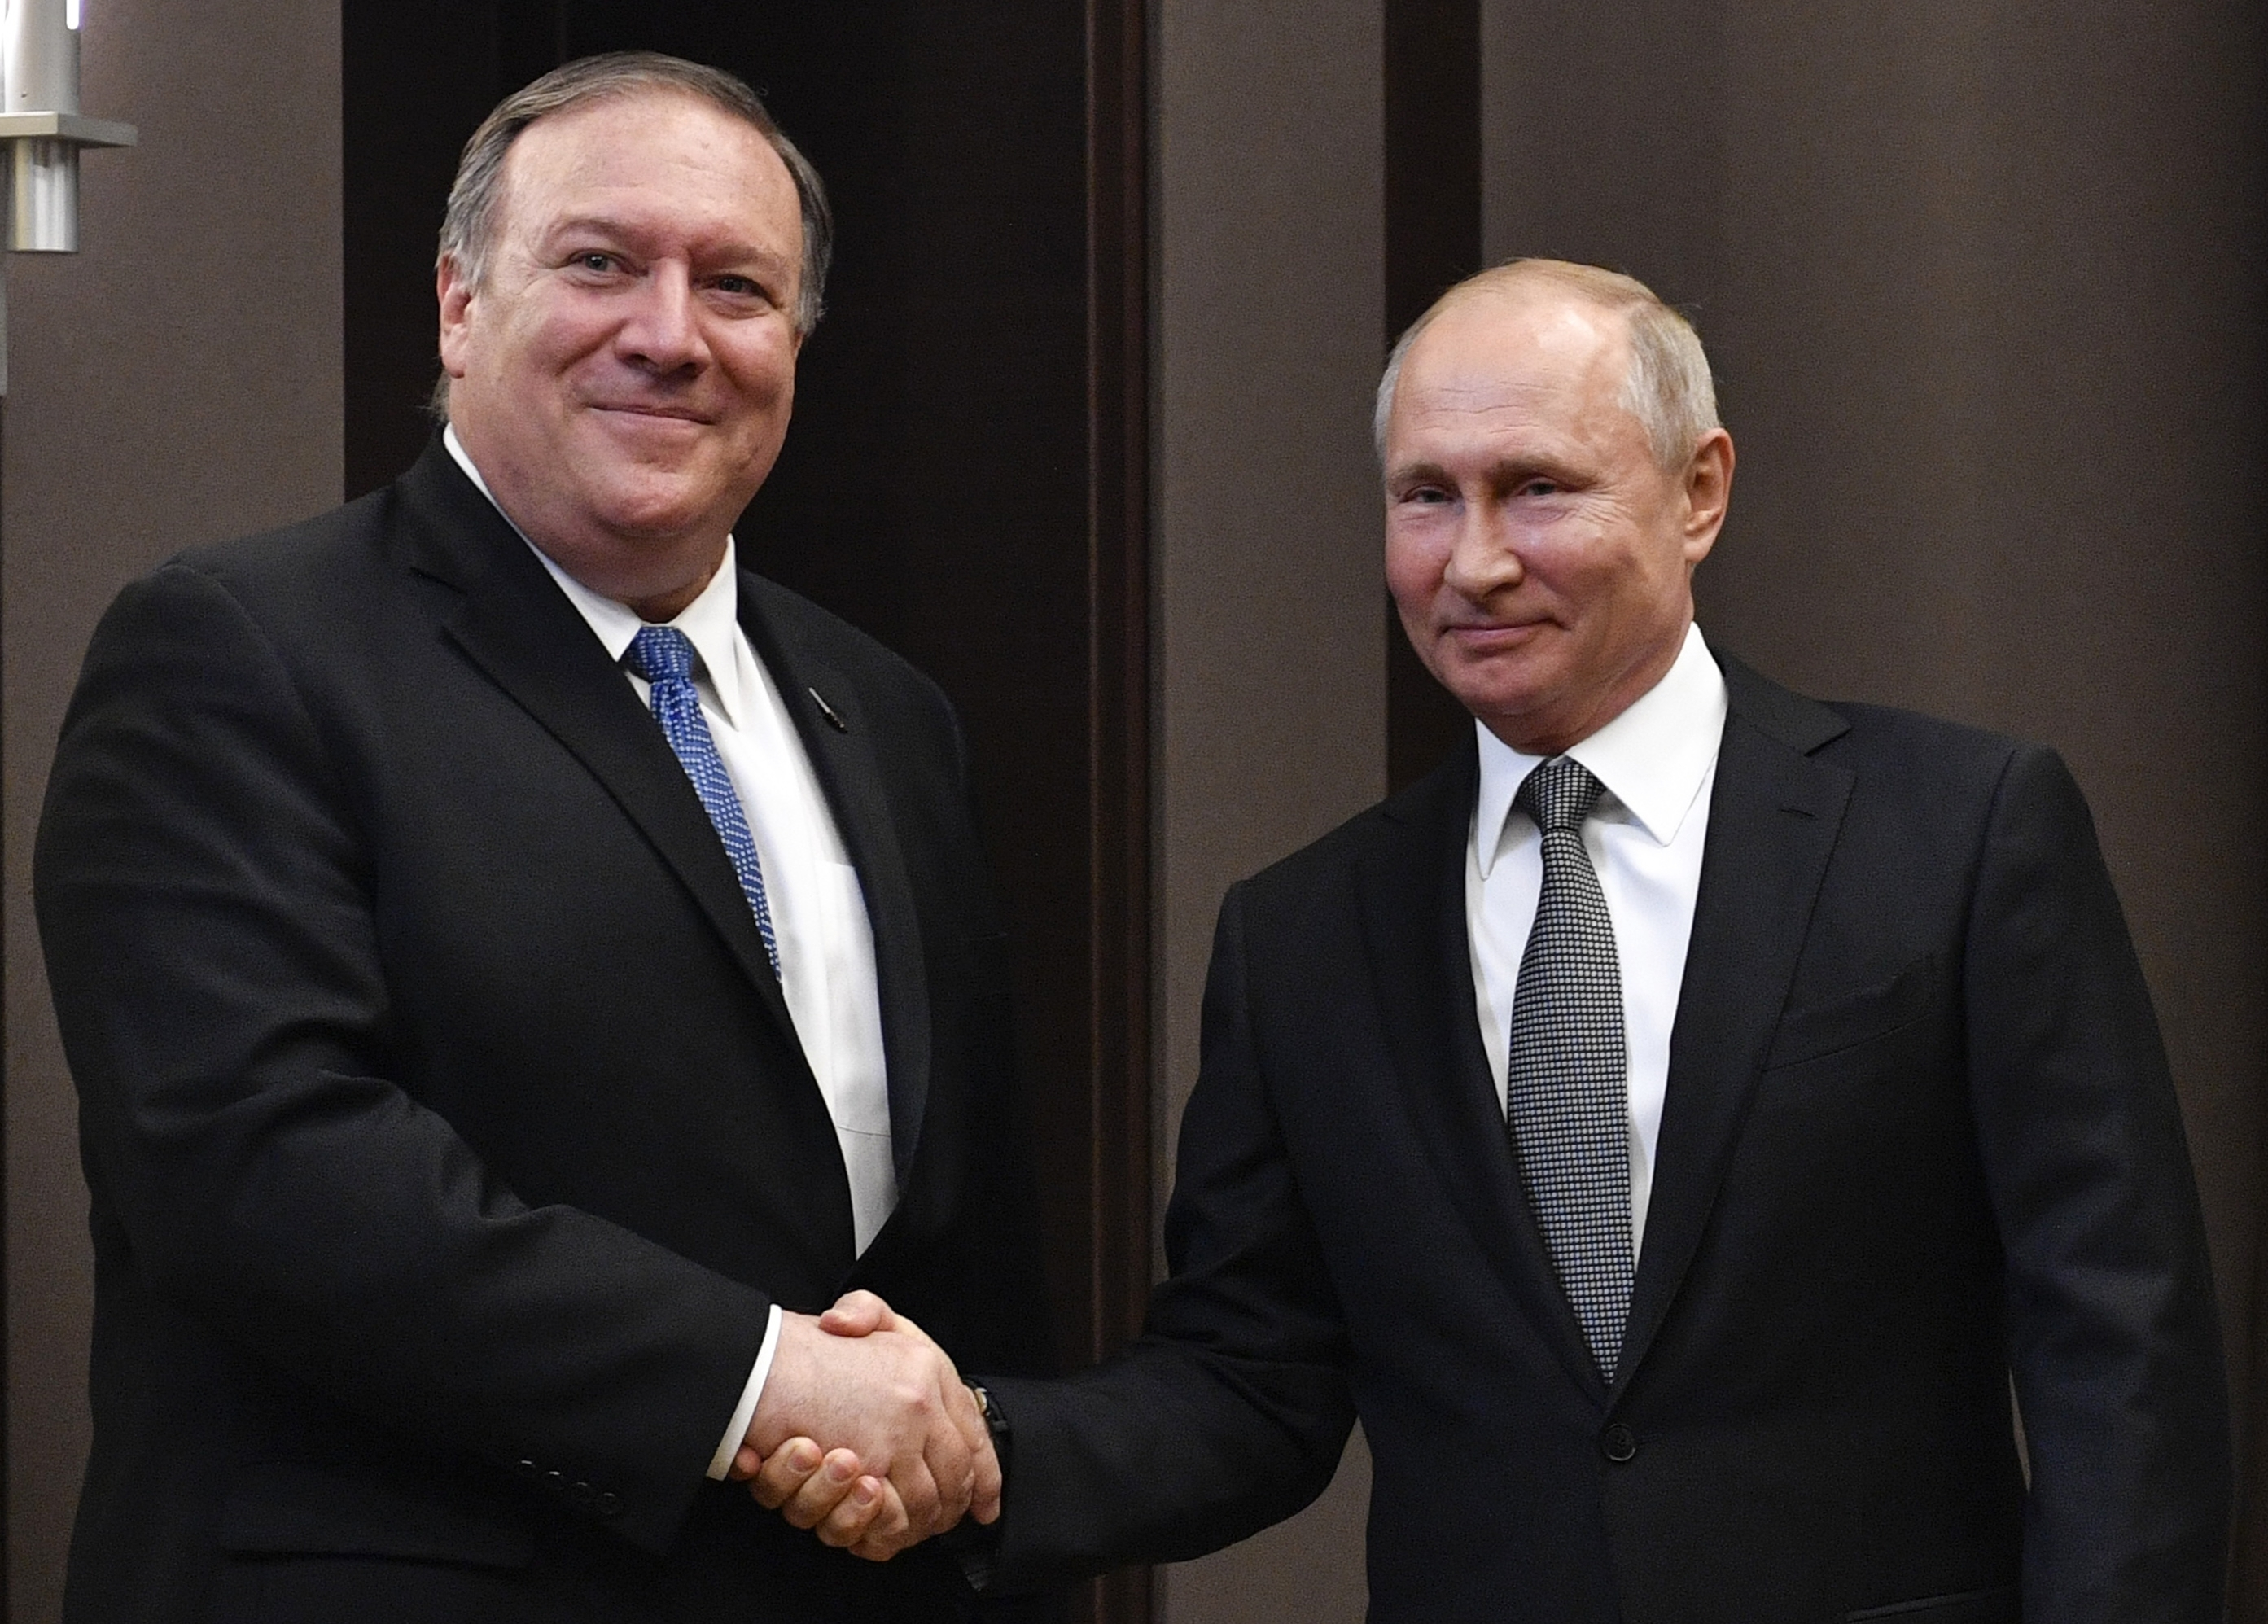 Russian President Vladimir Putin, right, and U.S. Secretary of State Mike Pompeo, pose for a photo before their talks in the Black Sea resort city of Sochi, southern Russia, May 14, 2019.